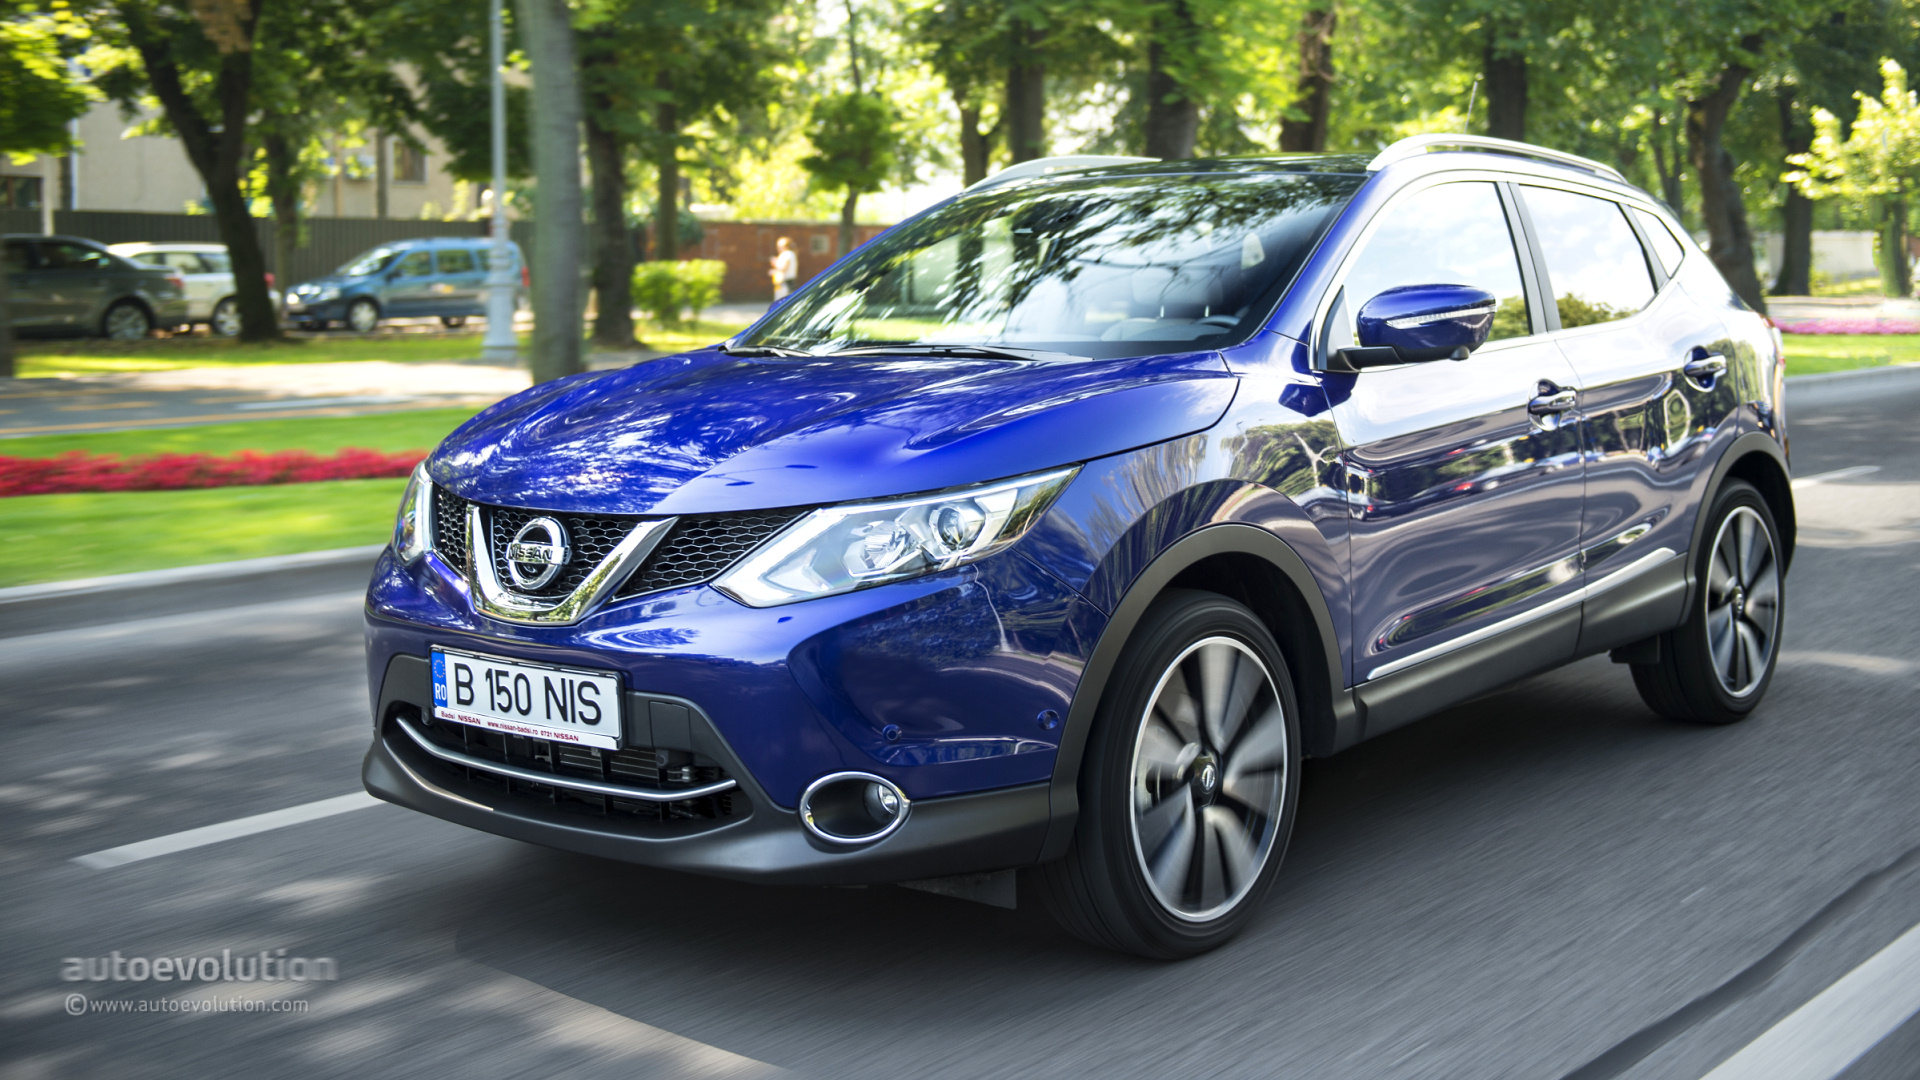 2014 nissan qashqai tested autoevolution. Black Bedroom Furniture Sets. Home Design Ideas